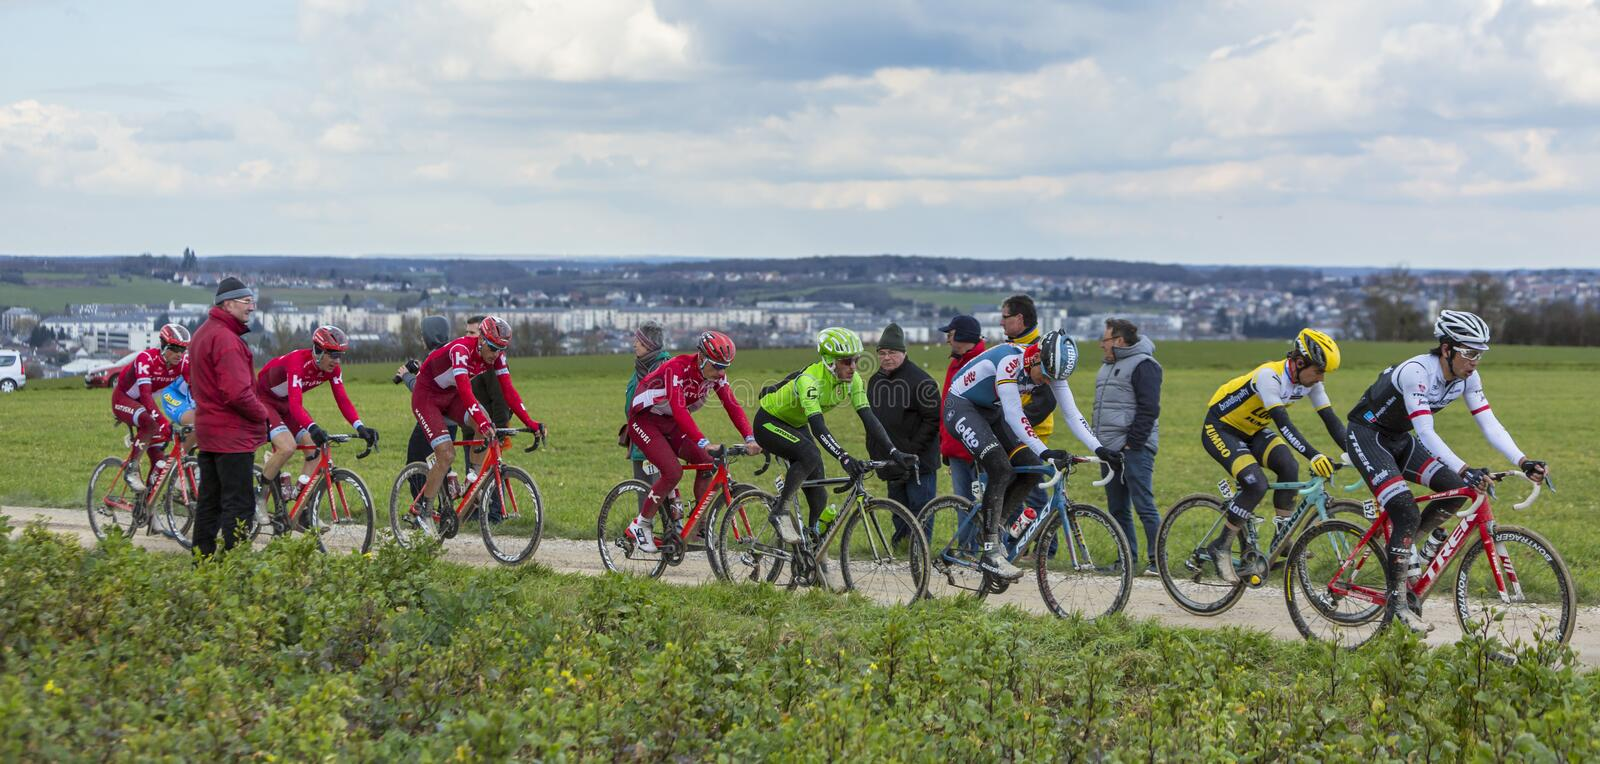 The Peloton on a Dirty Road - Paris-Nice 2016 royalty free stock images